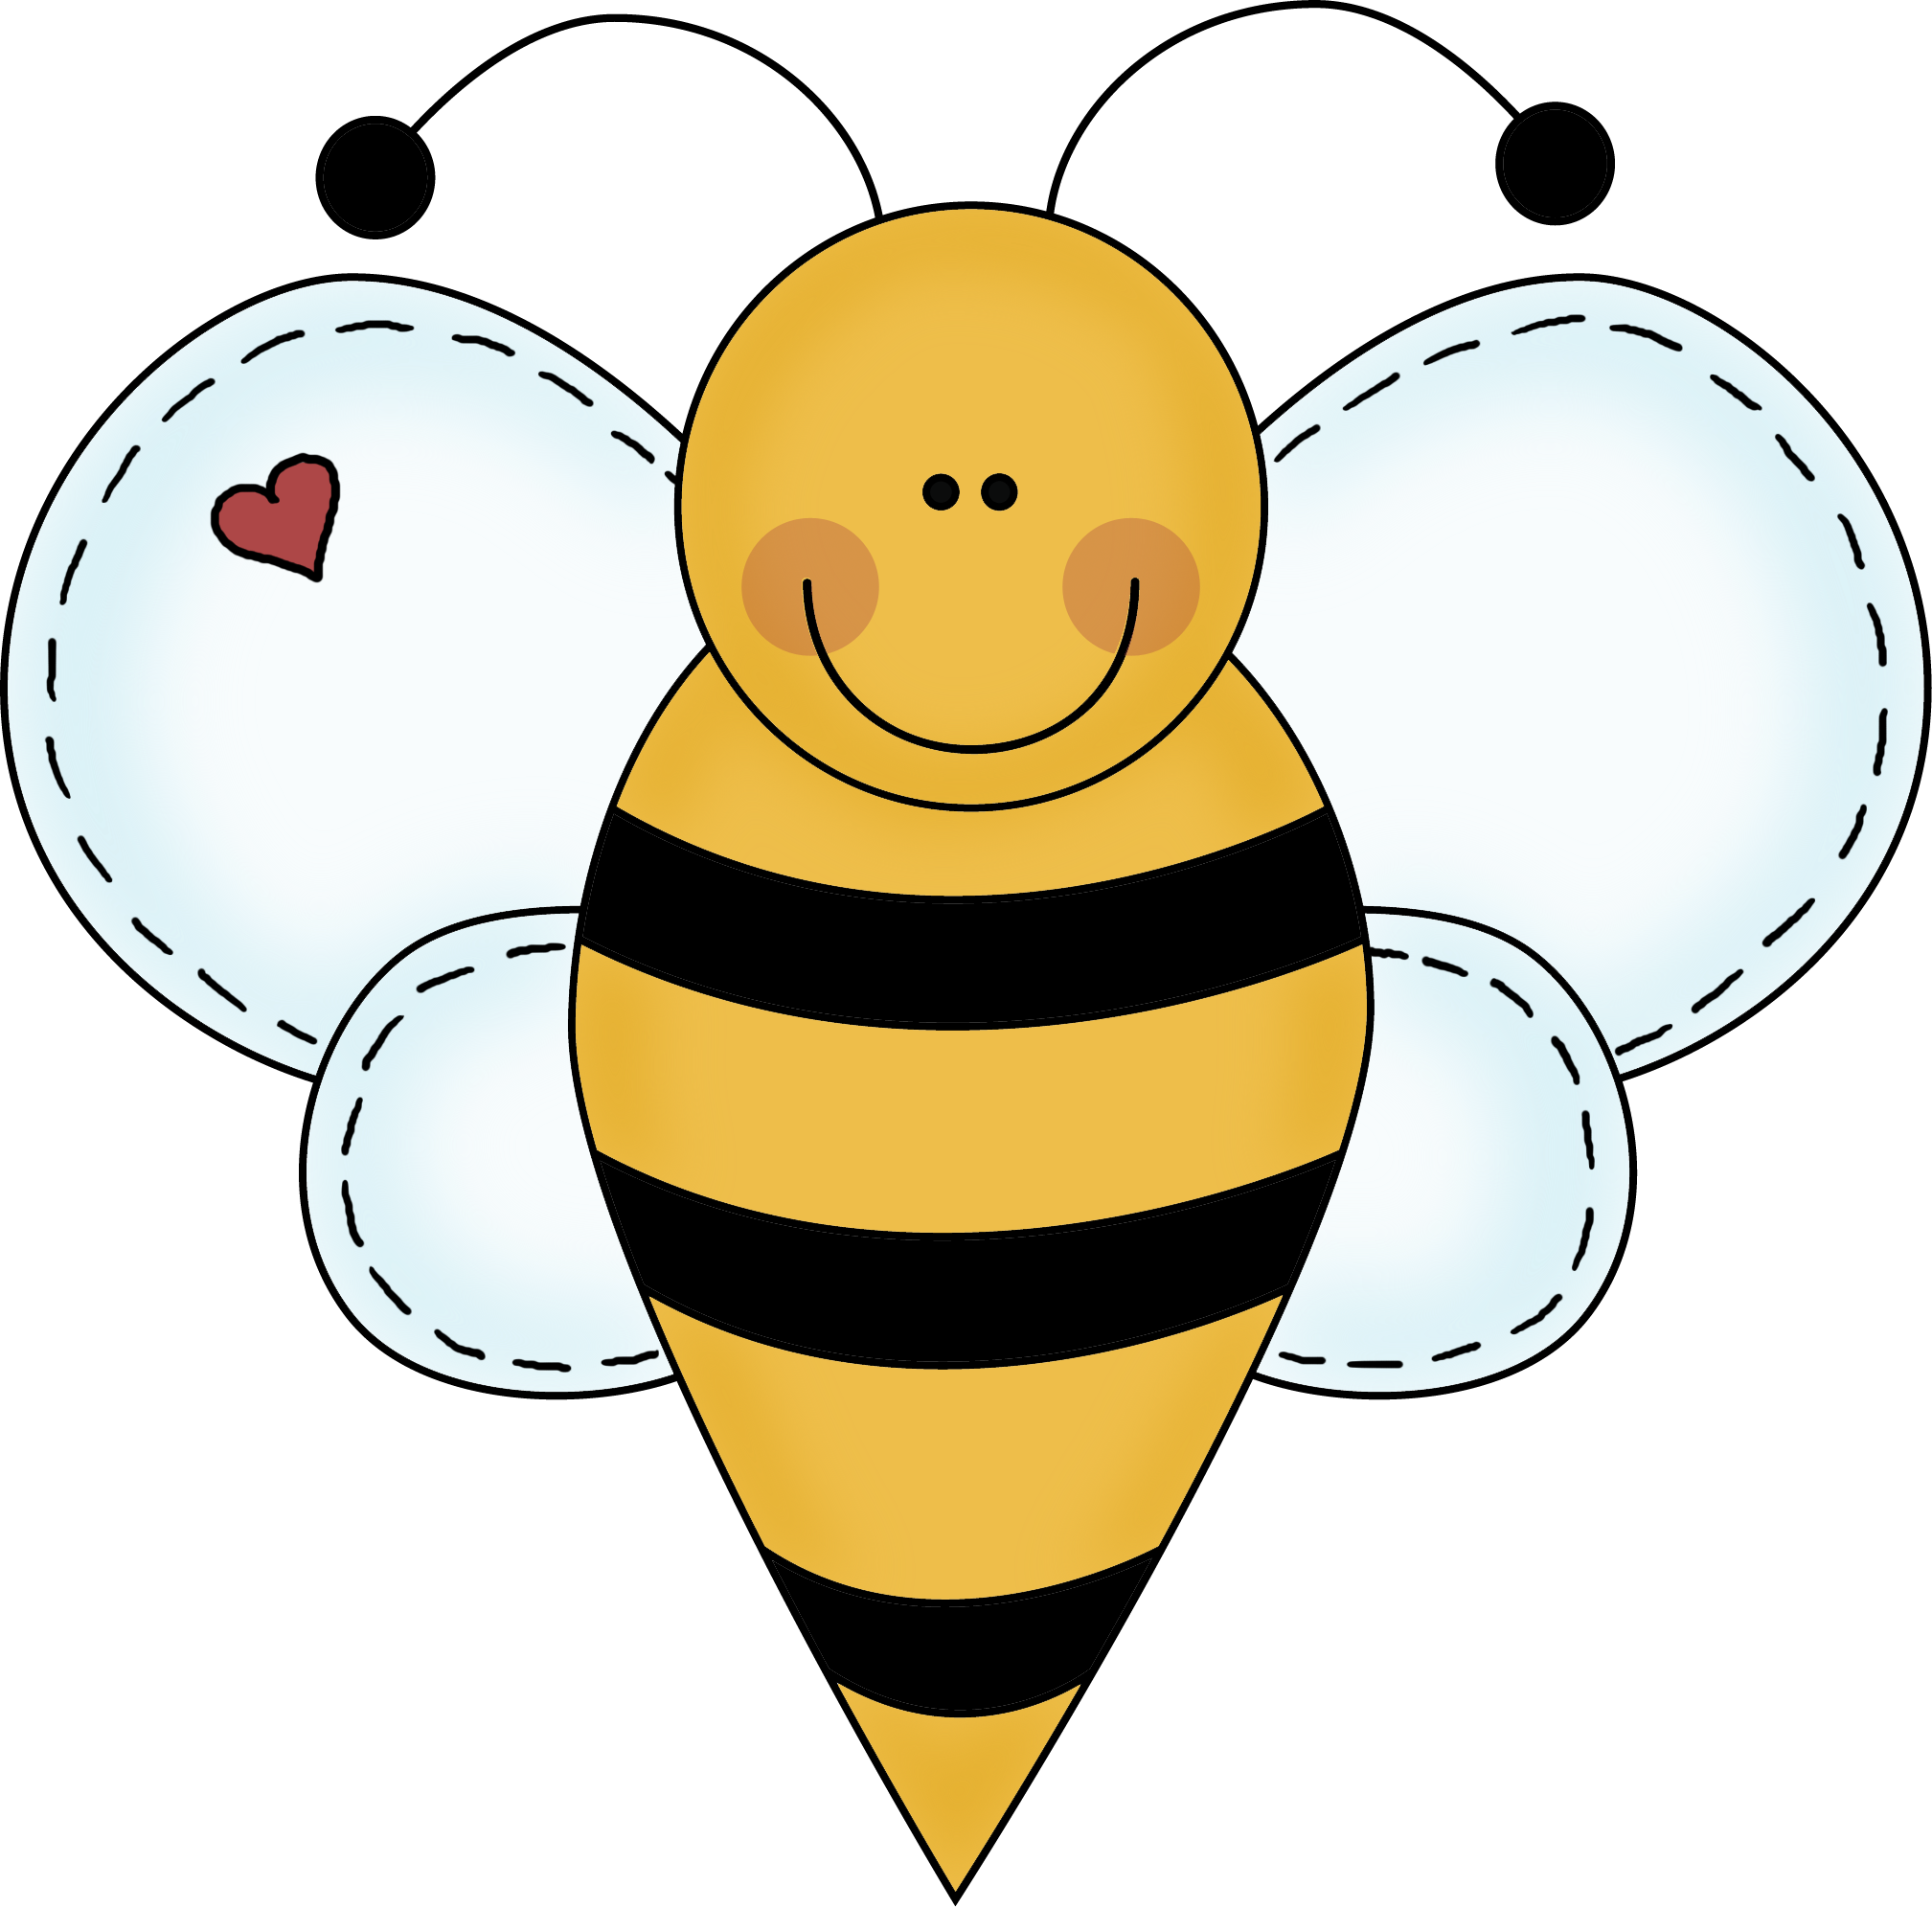 Spelling bee spelling clipart